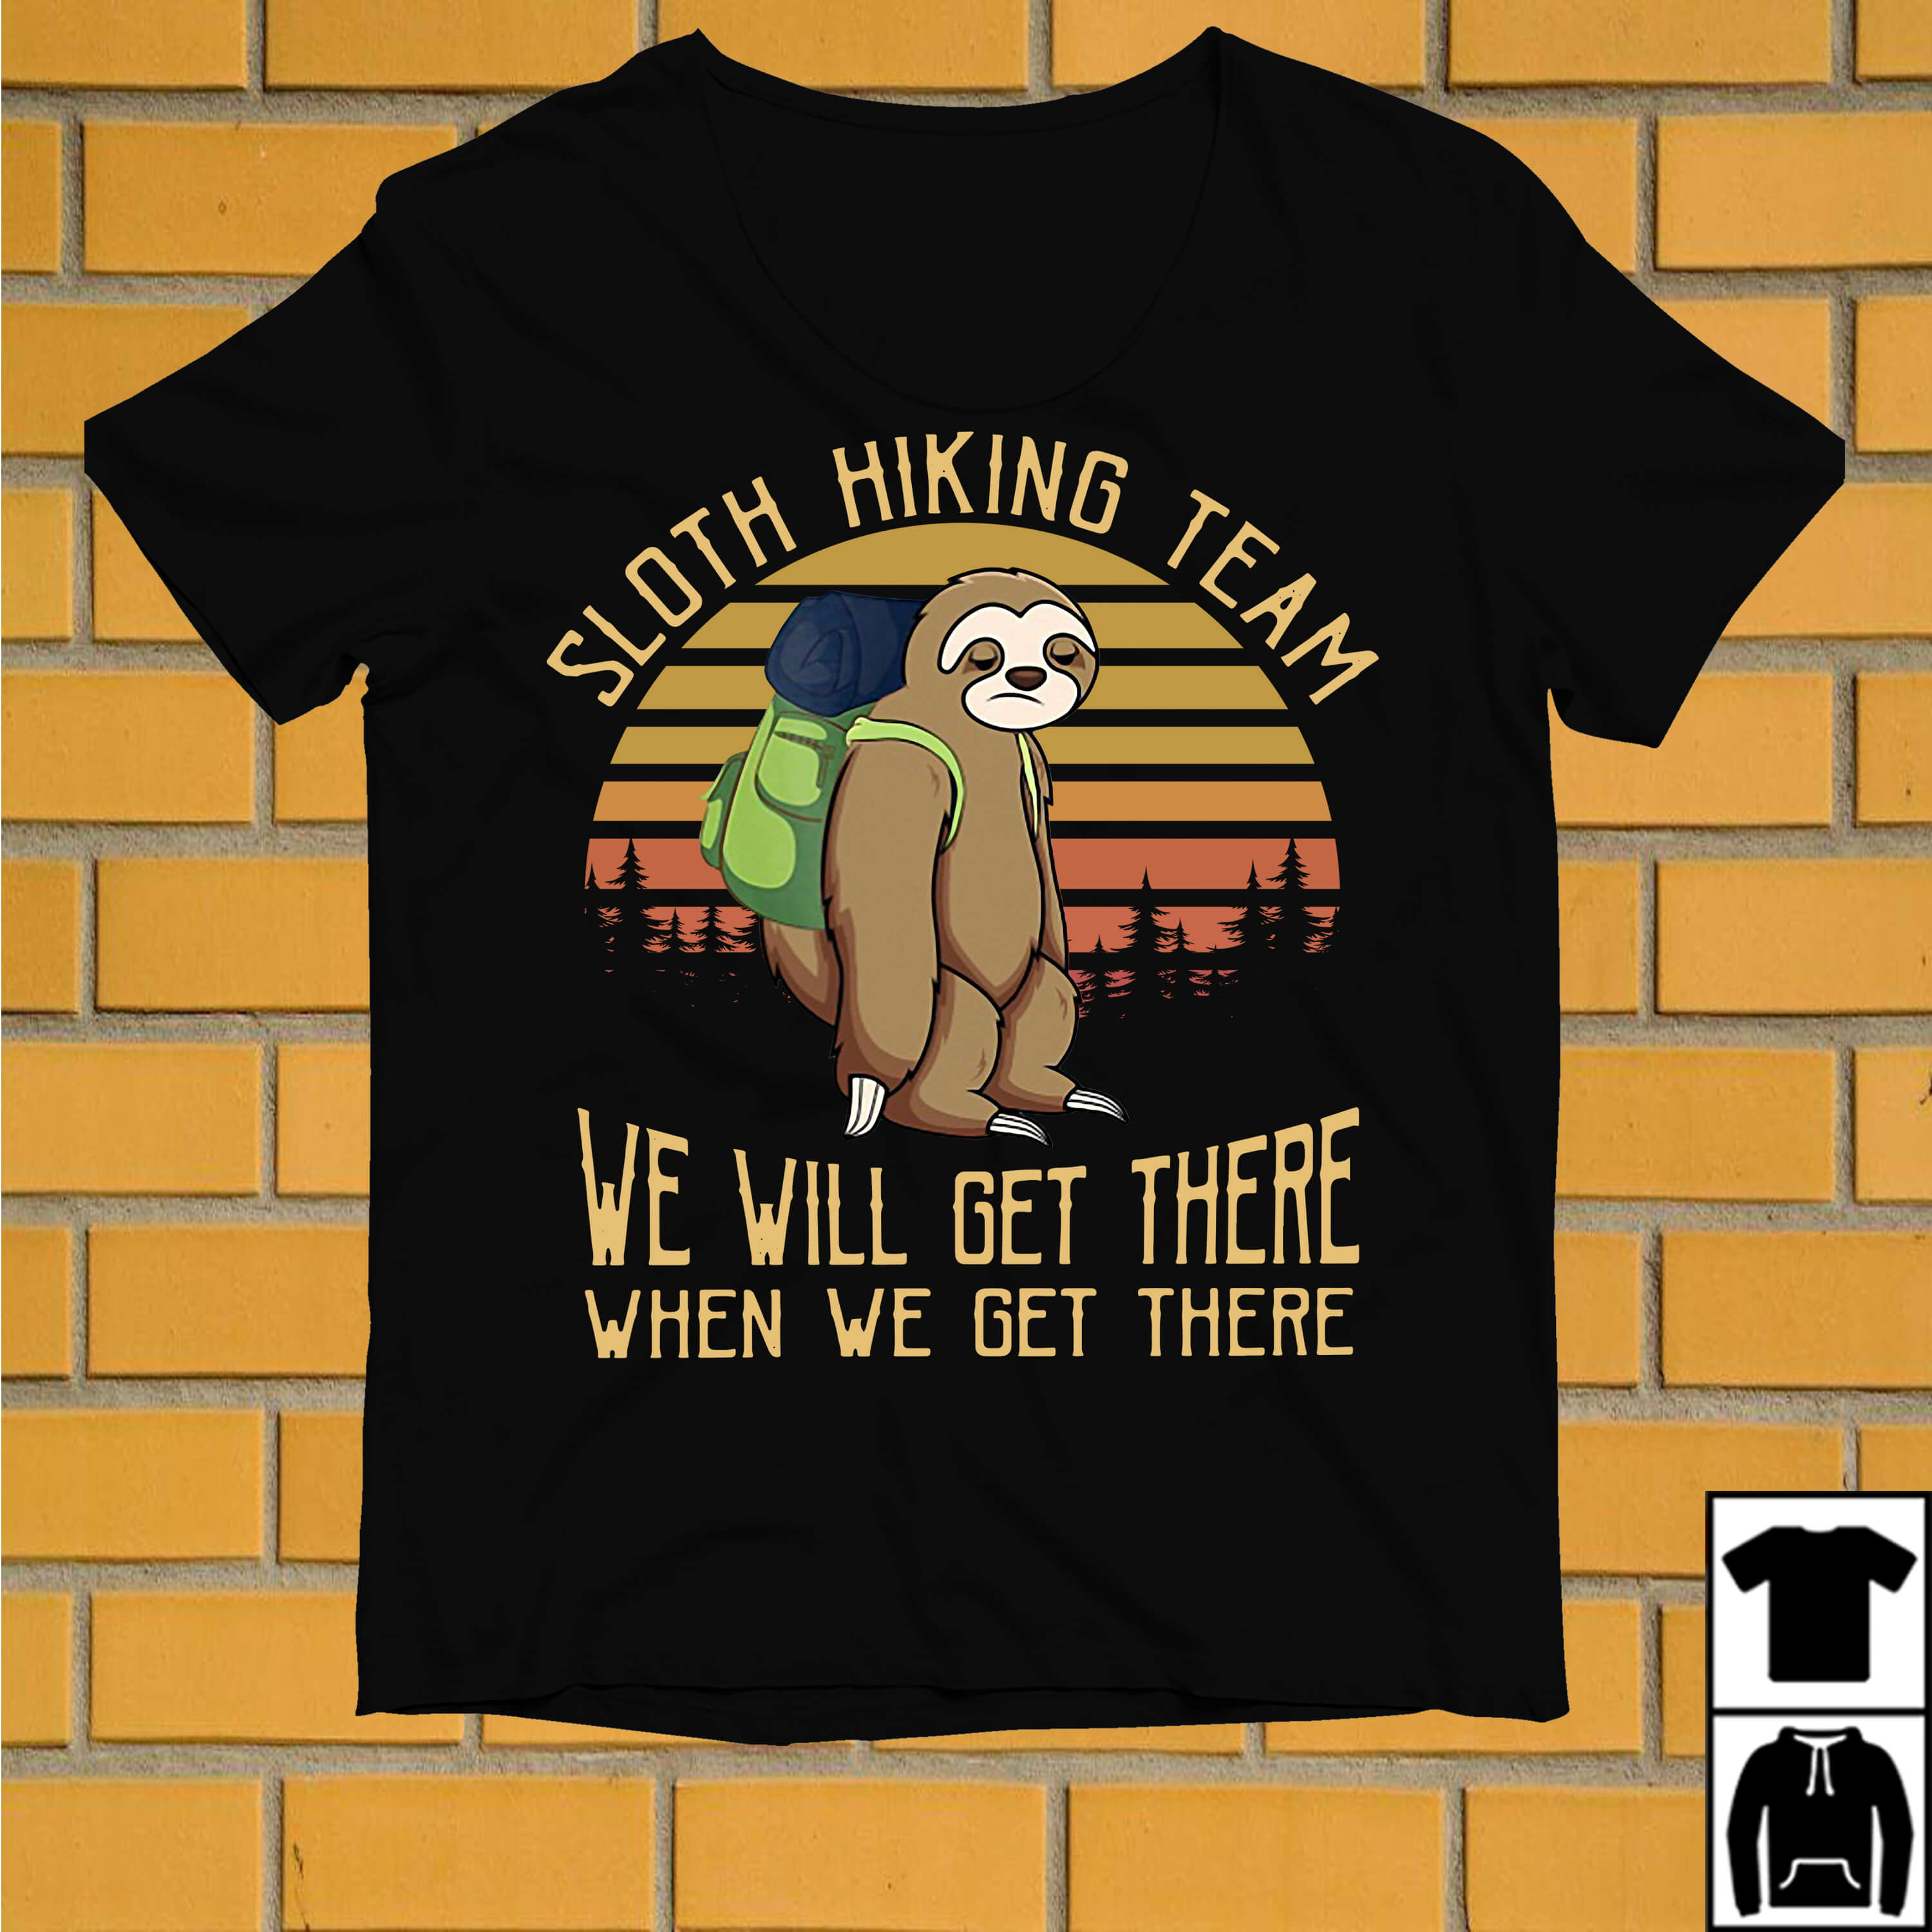 Sloth hiking team we will get there vintage shirt